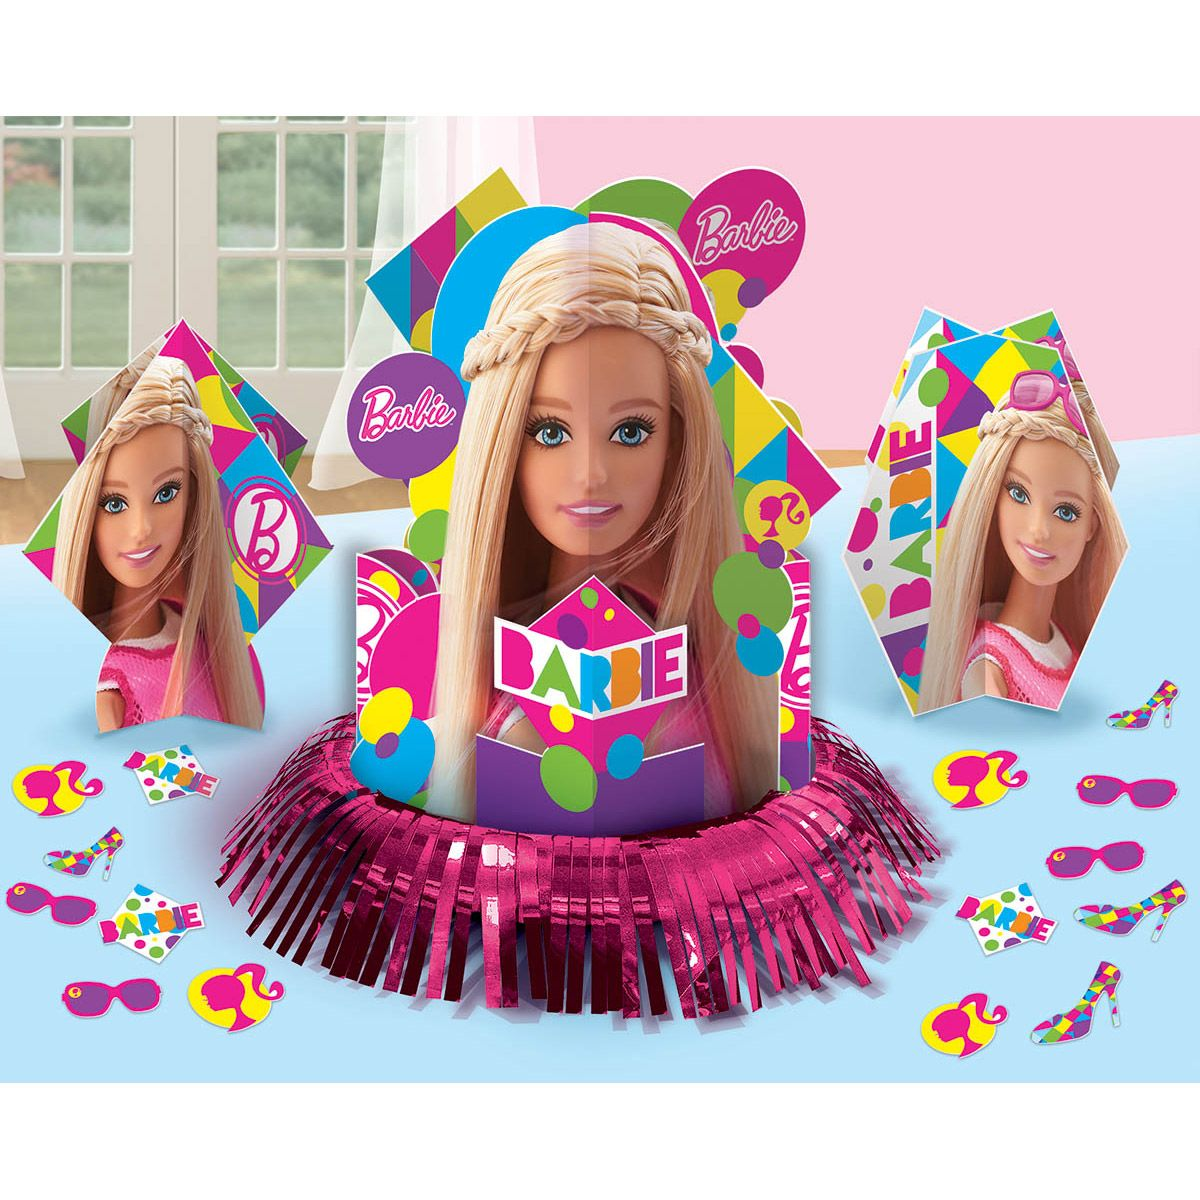 Barbie Sparkle Table Decorating Kit - Party Supplies